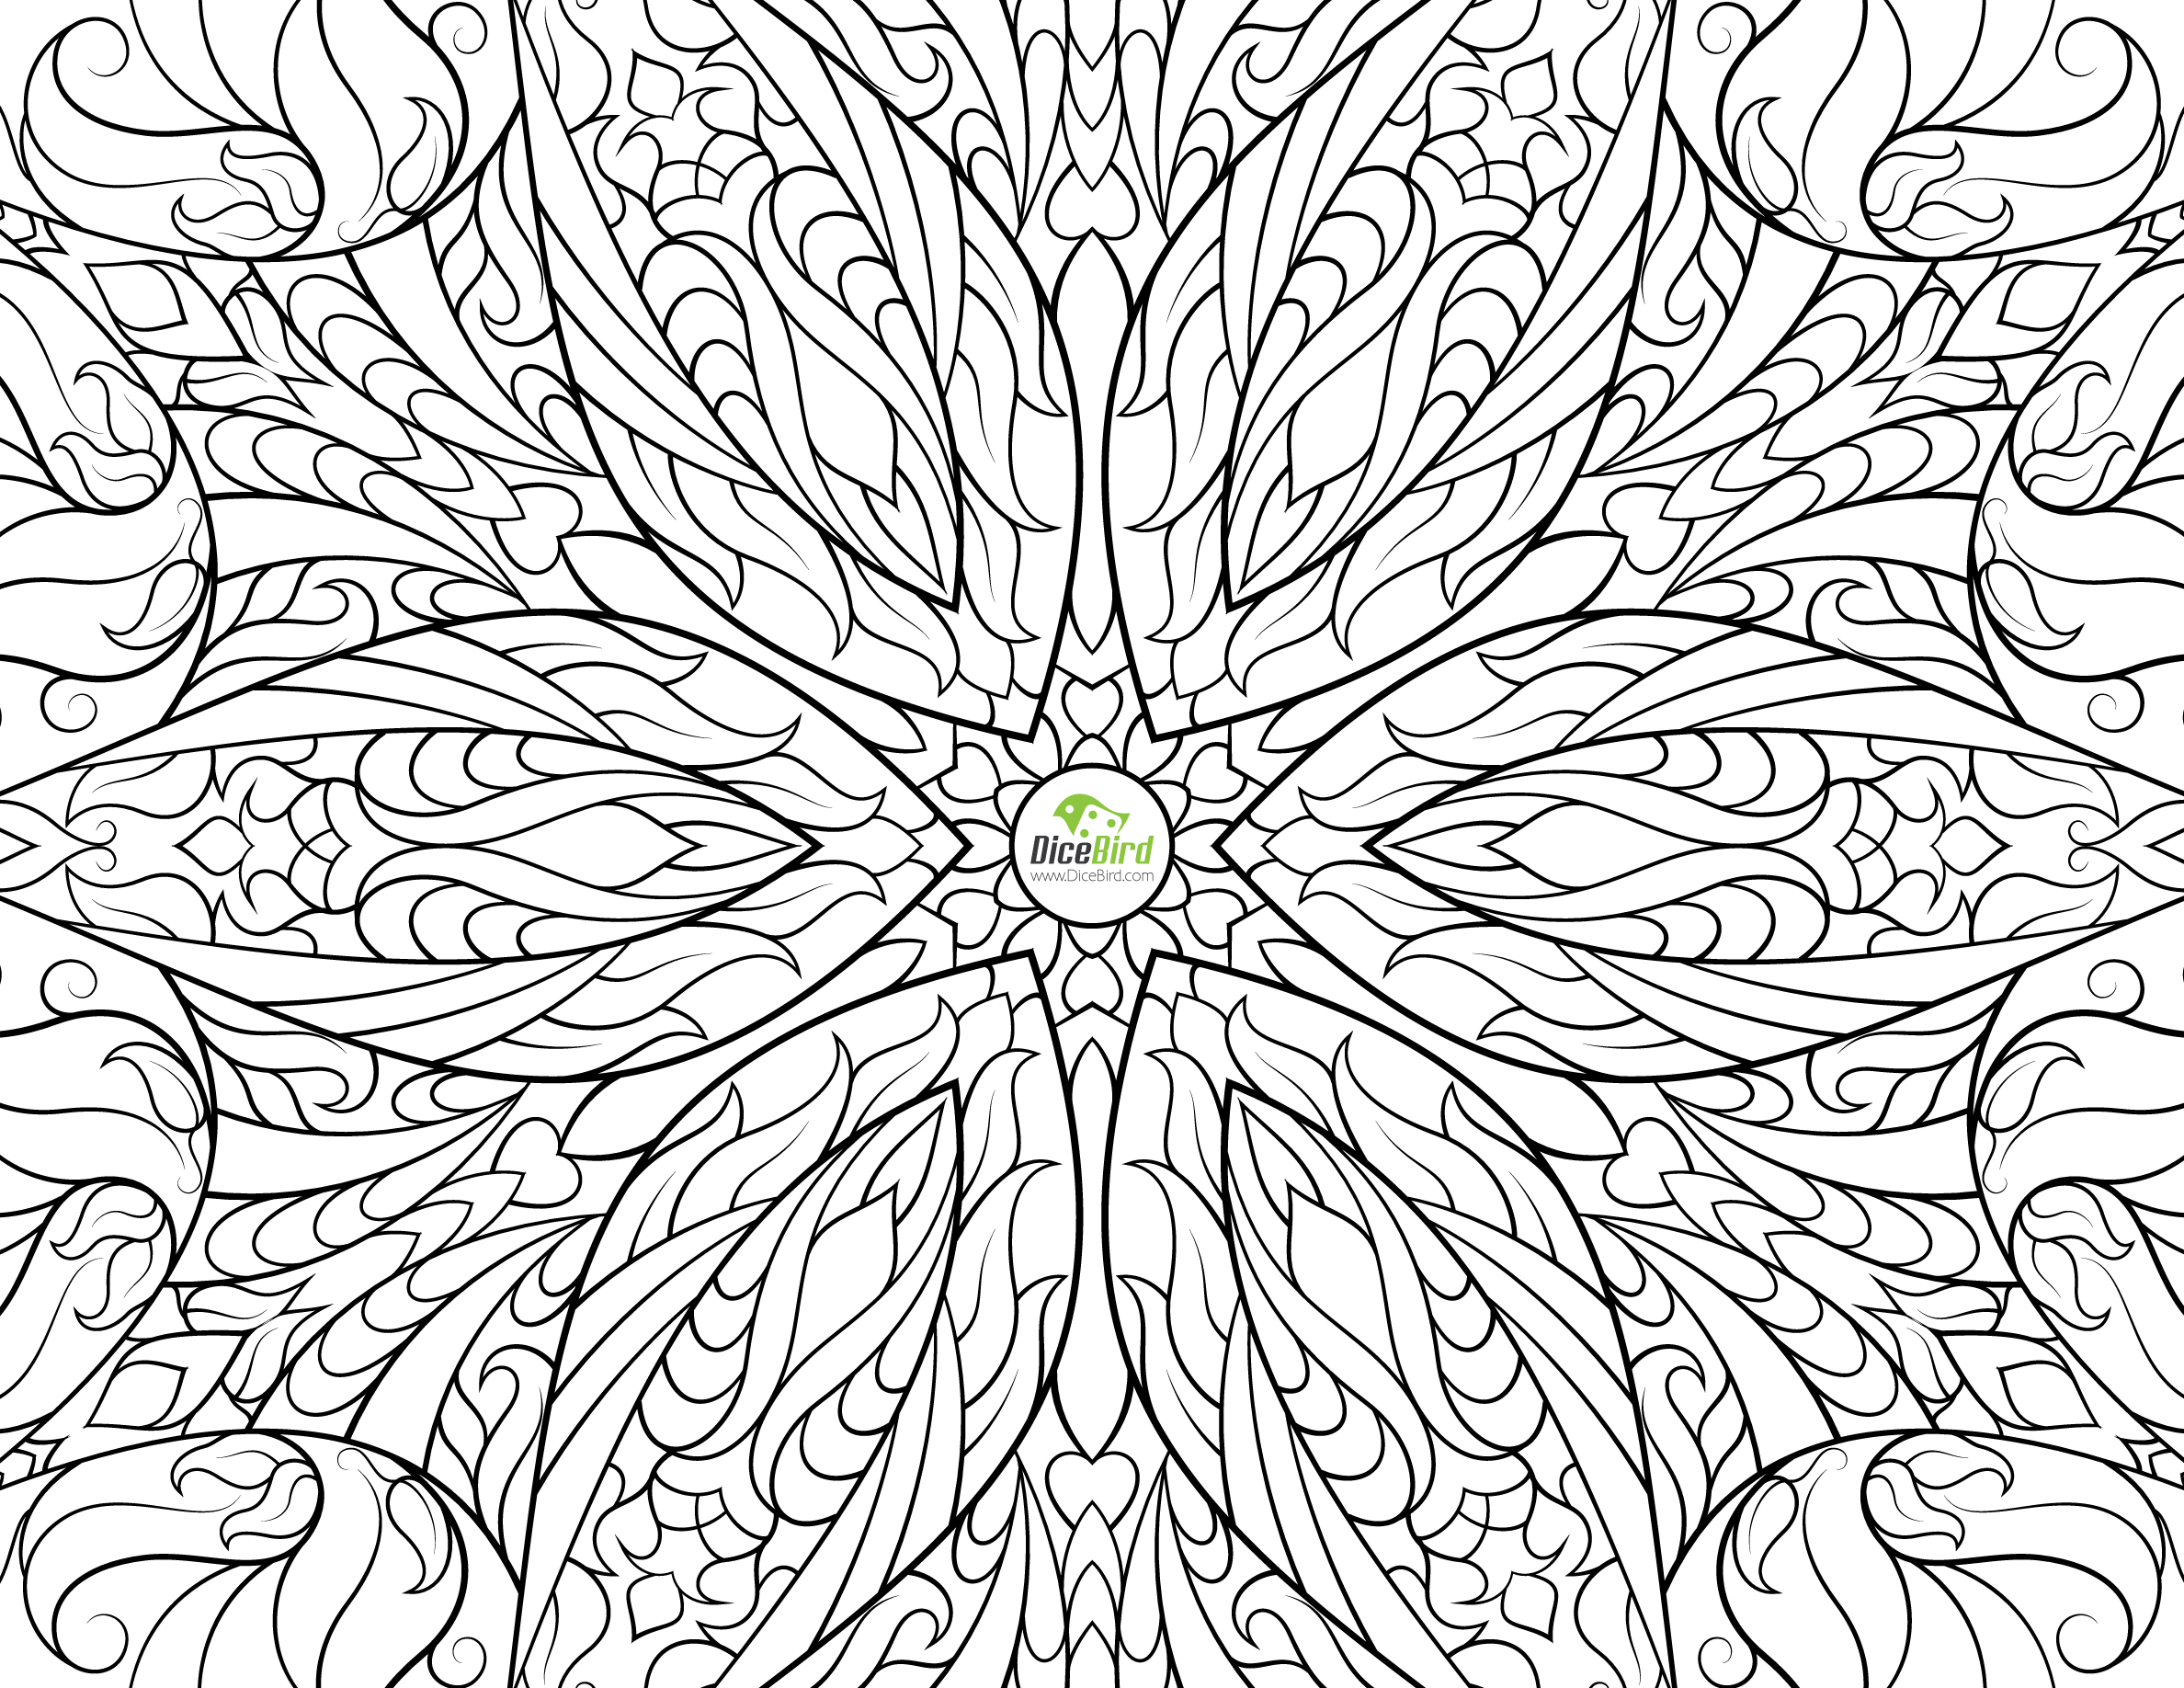 2376x1836 Difficult Coloring Pages For Adults Free Challenging Under The Sea